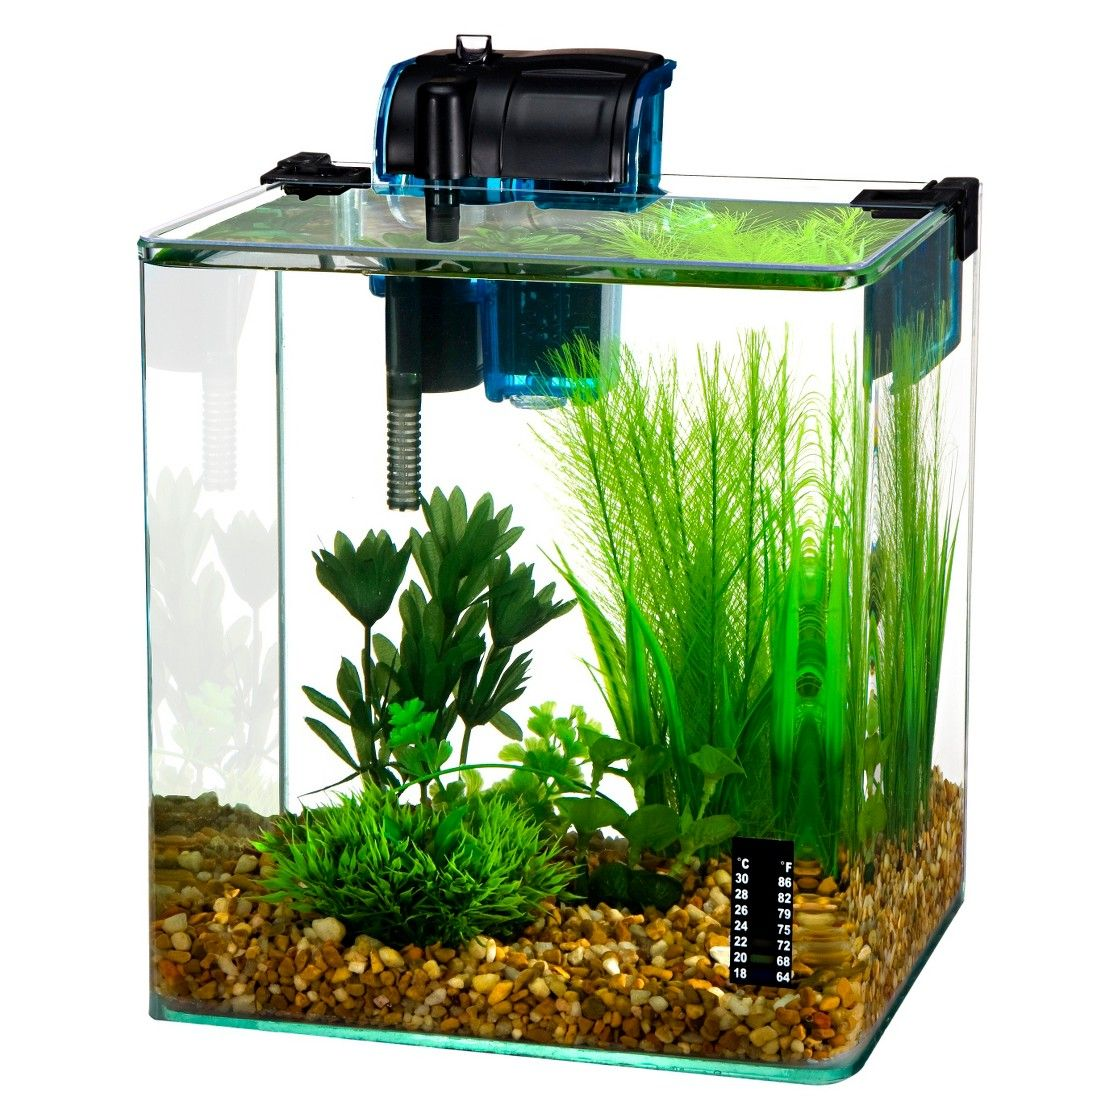 Water world vertex desktop 2 7 gallon aquarium kit from for Saltwater fish tank kit